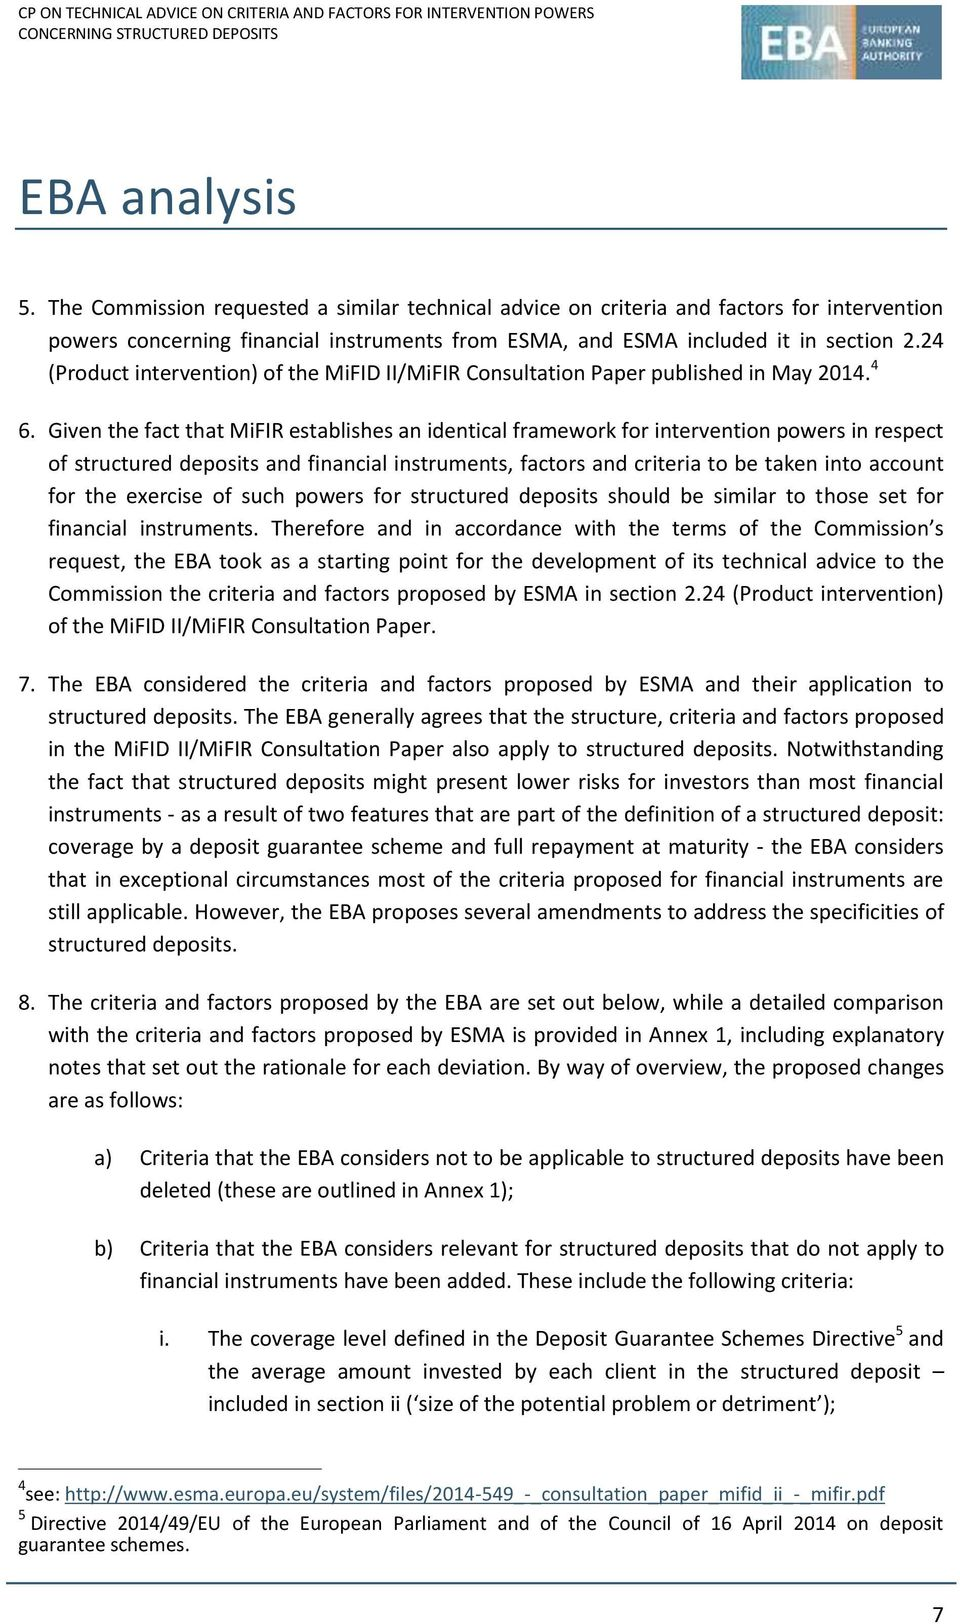 Given the fact that MiFIR establishes an identical framework for intervention powers in respect of structured deposits and financial instruments, factors and criteria to be taken into account for the